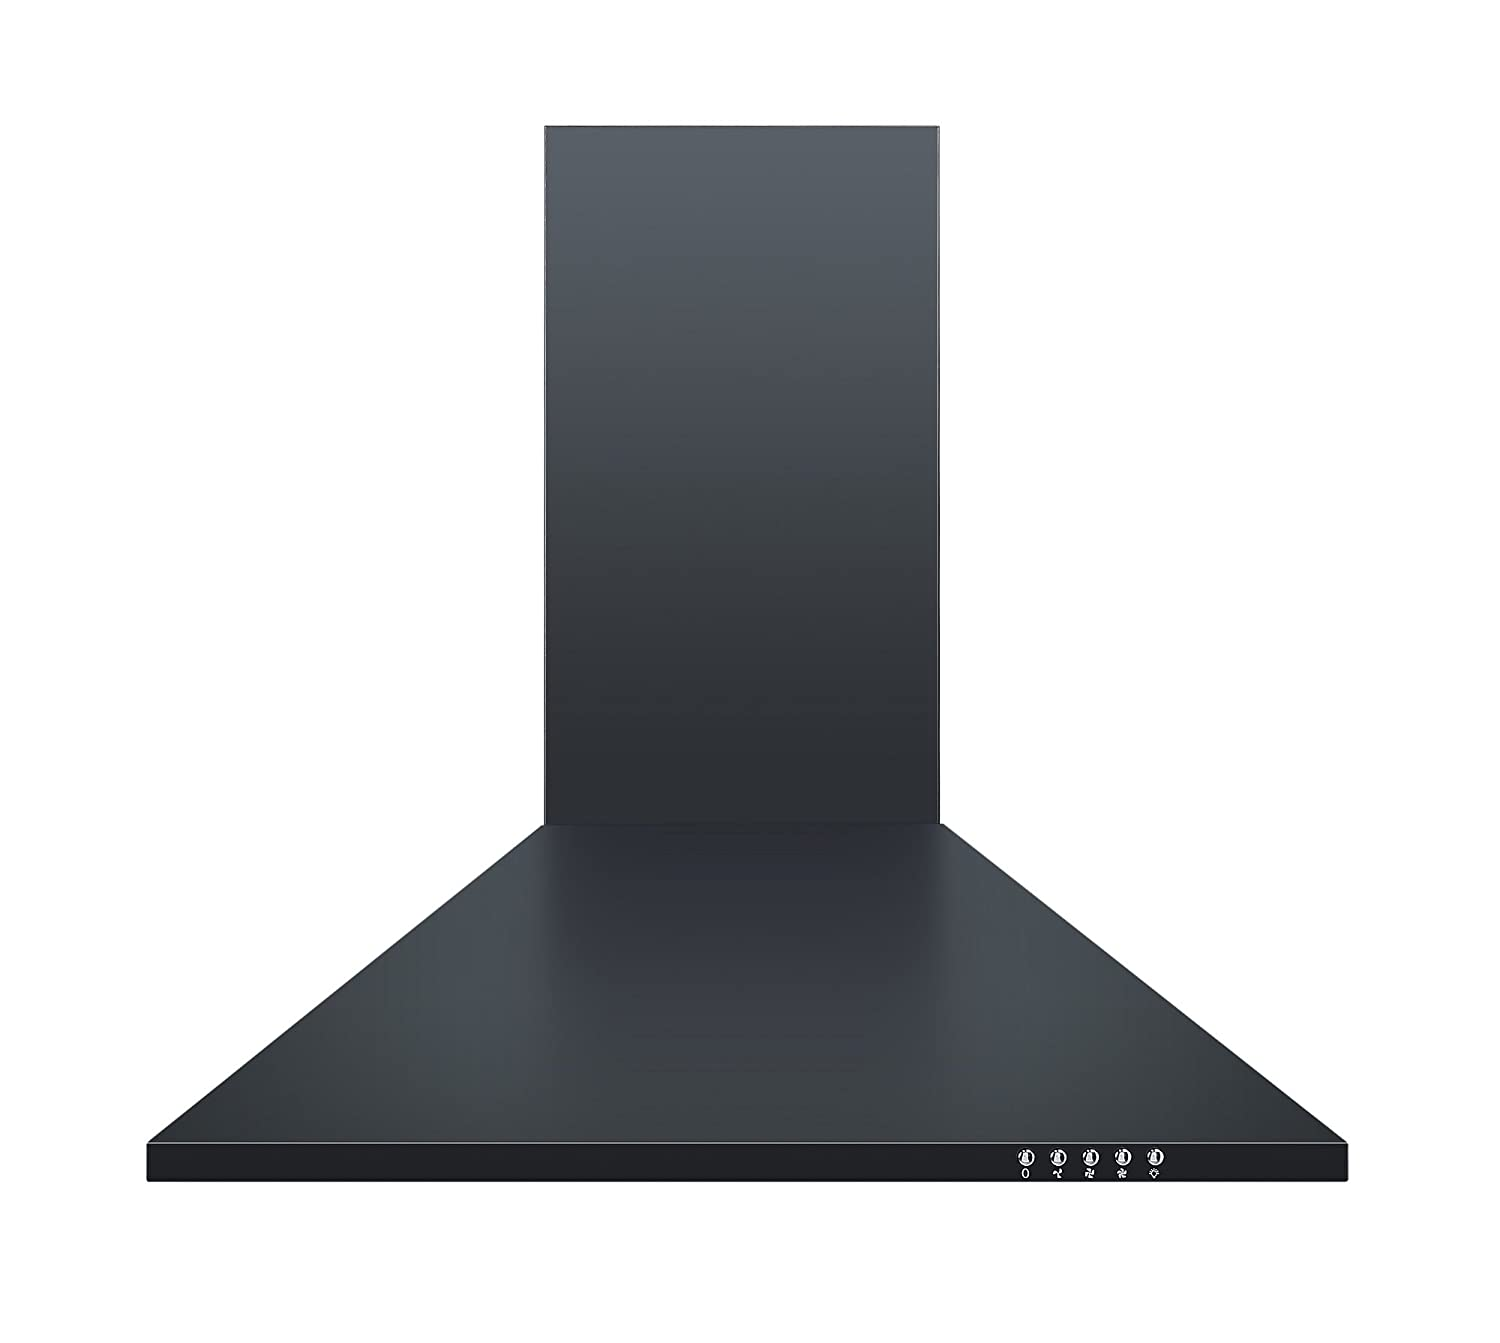 Cookology CH600BK 60cm Chimney Cooker Hood in Black | Unbranded Kitchen Extractor Fan [Energy Class C]